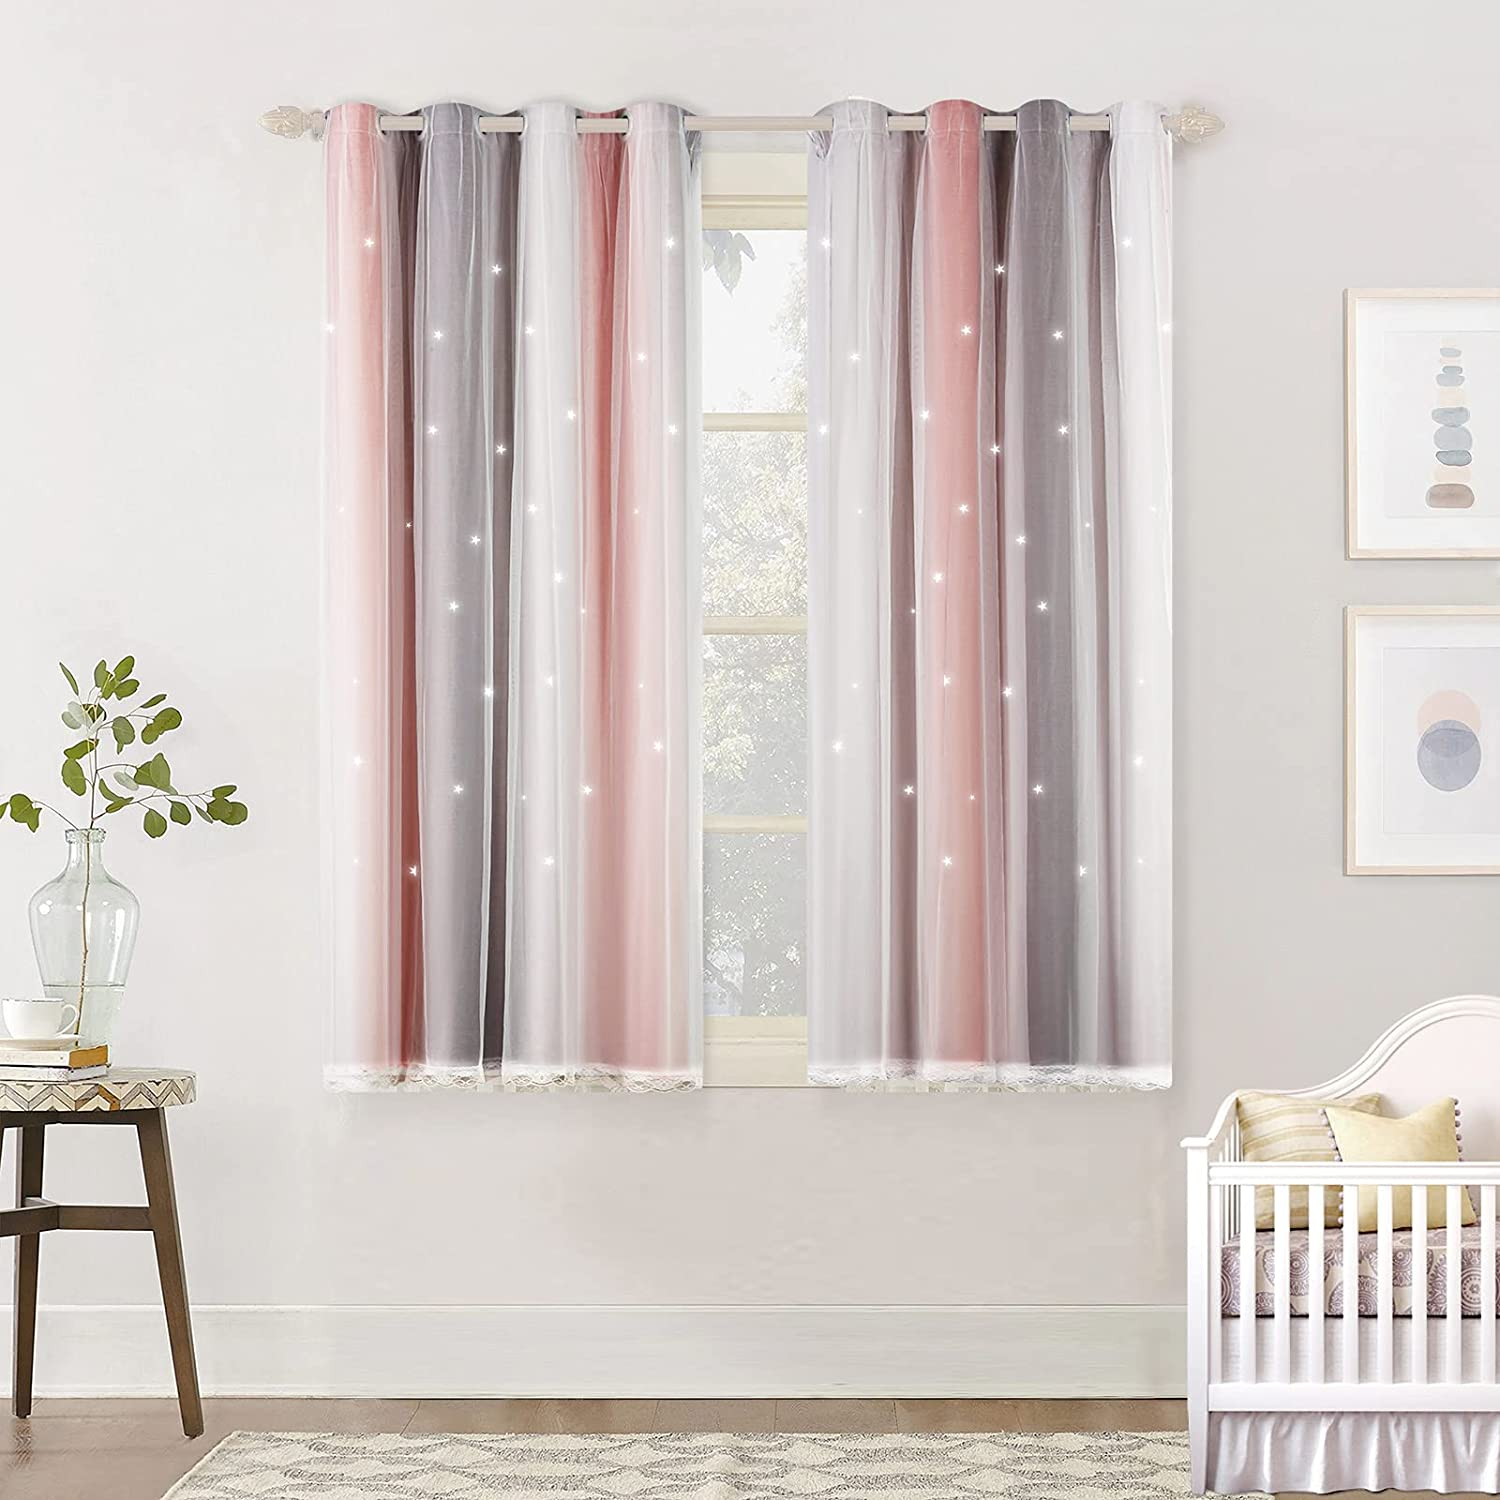 TAOCOCO Eyelet Curtains Starry Sky Curtains for Living Room Double Layer Home Decorative 54 * 46 inches 1 PANEL Starry Sky-pink Grey 1 PANEL-54*46 Inch